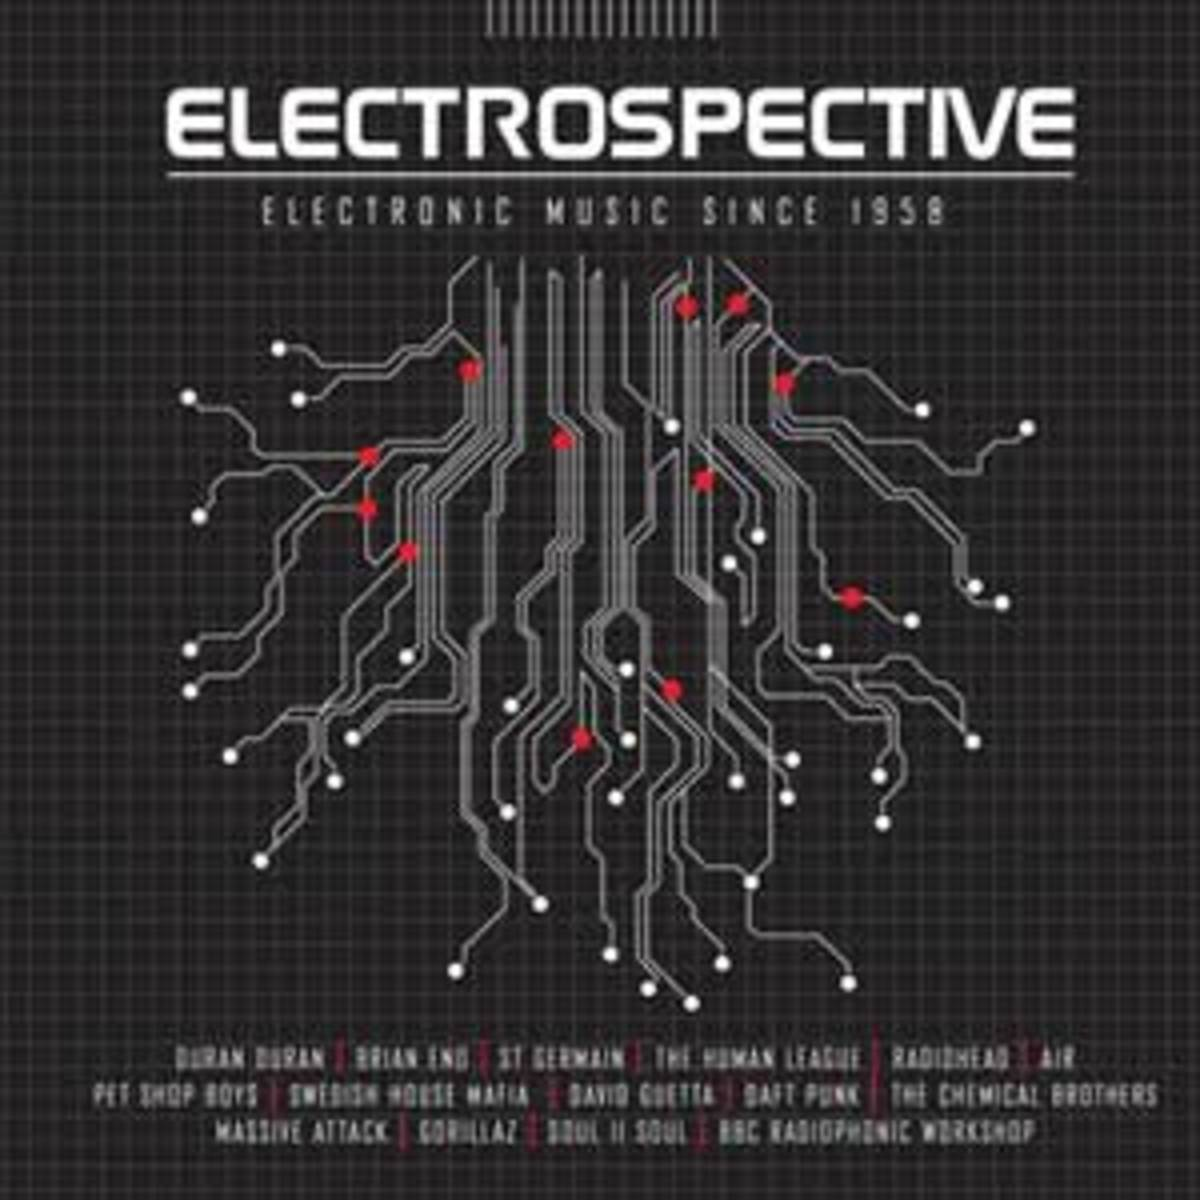 Electrospective: A Celebration Of Electronic Music From 1958-2012